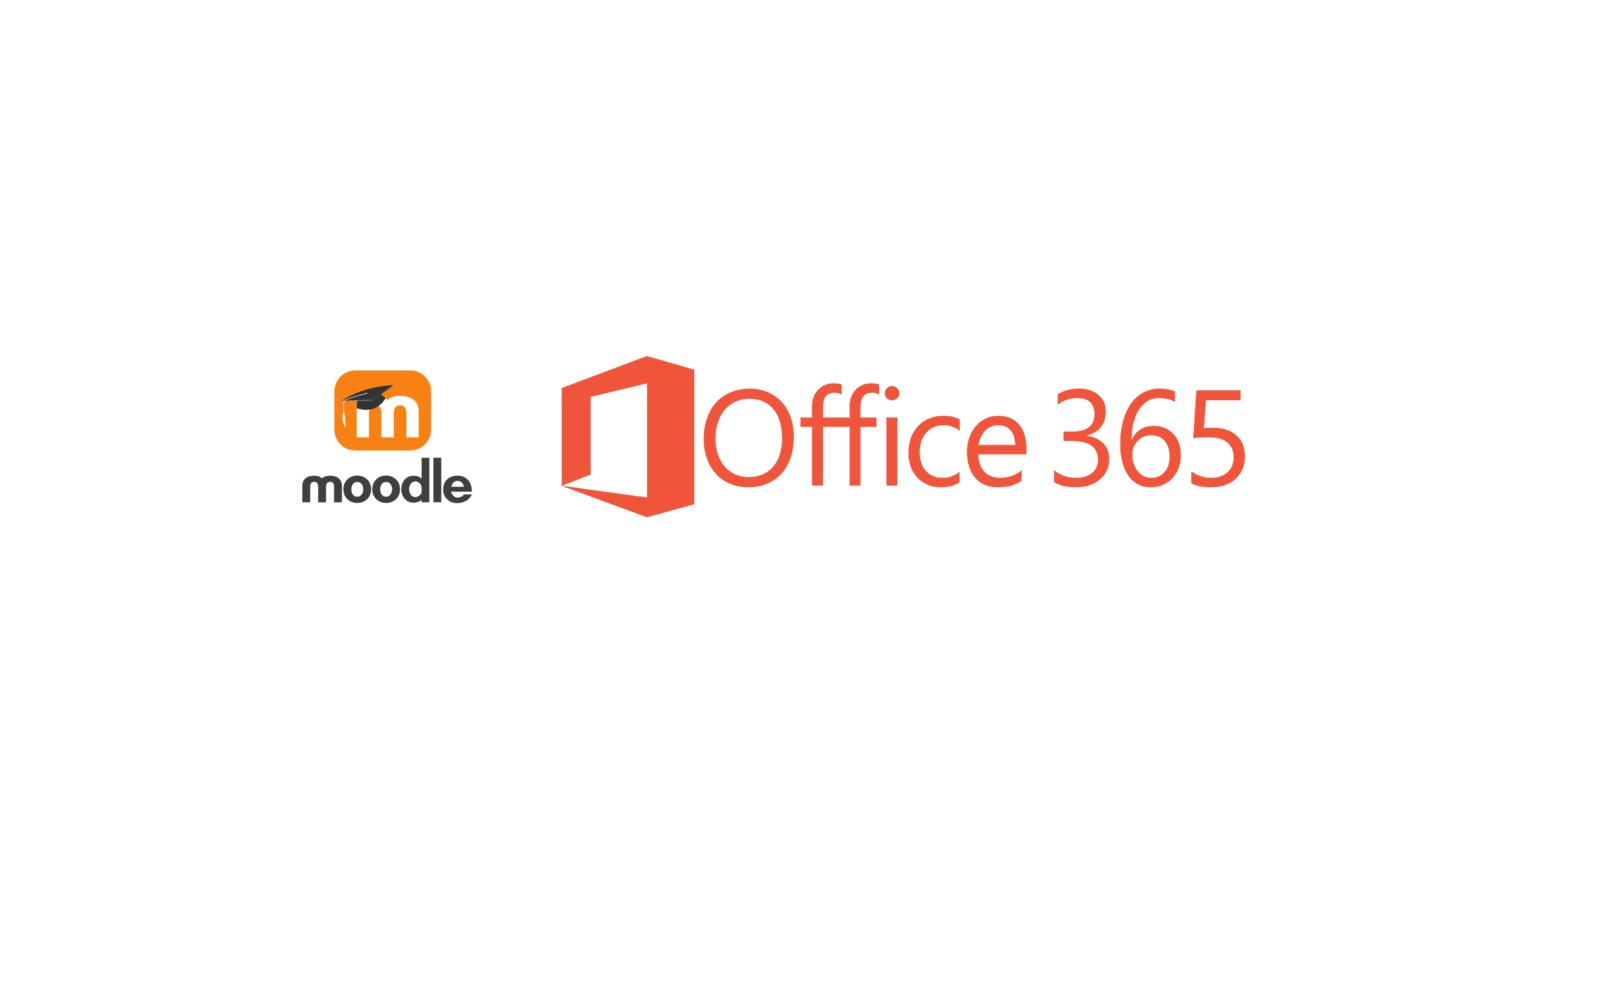 Moodle i Office365